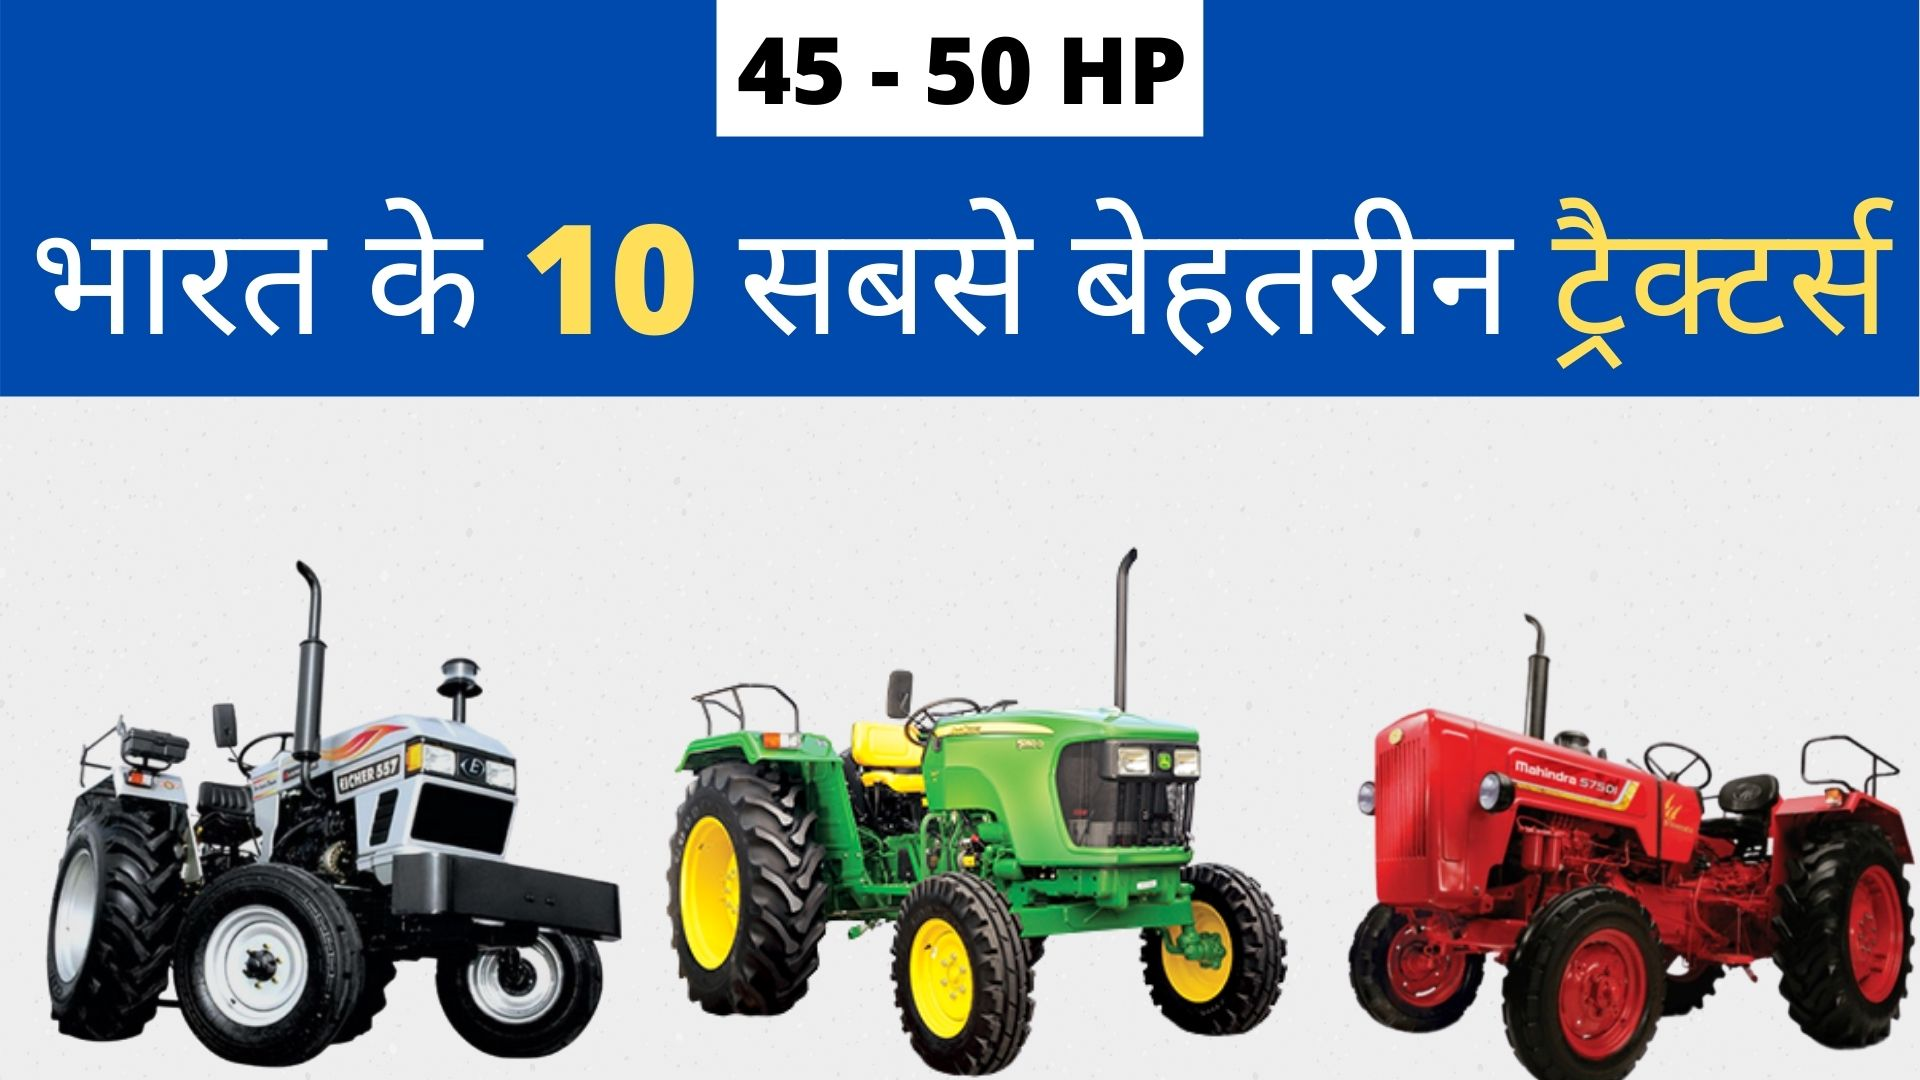 Latest Top 10 Tractors in India (45-50 HP) & Review 2020